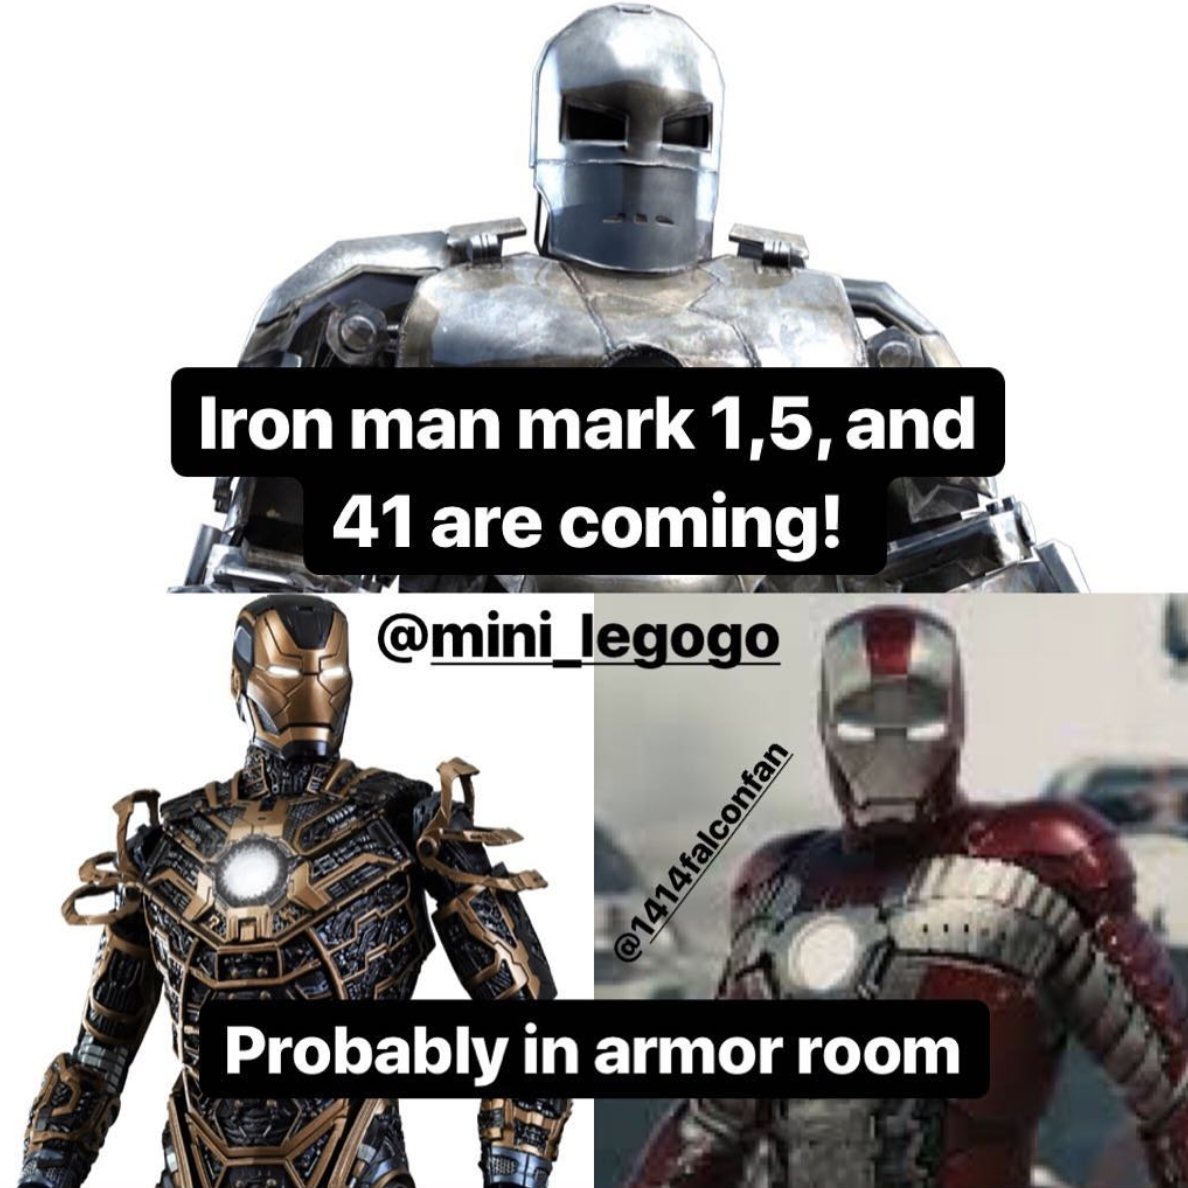 Several Classic Iron Man Suits Said To Feature In Avengers